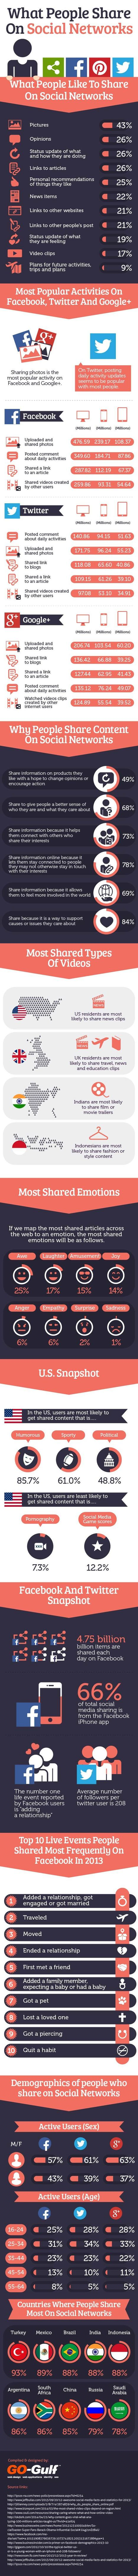 What & Why People Share On Social Media (Infographic) | Riders on the Storm | Scoop.it